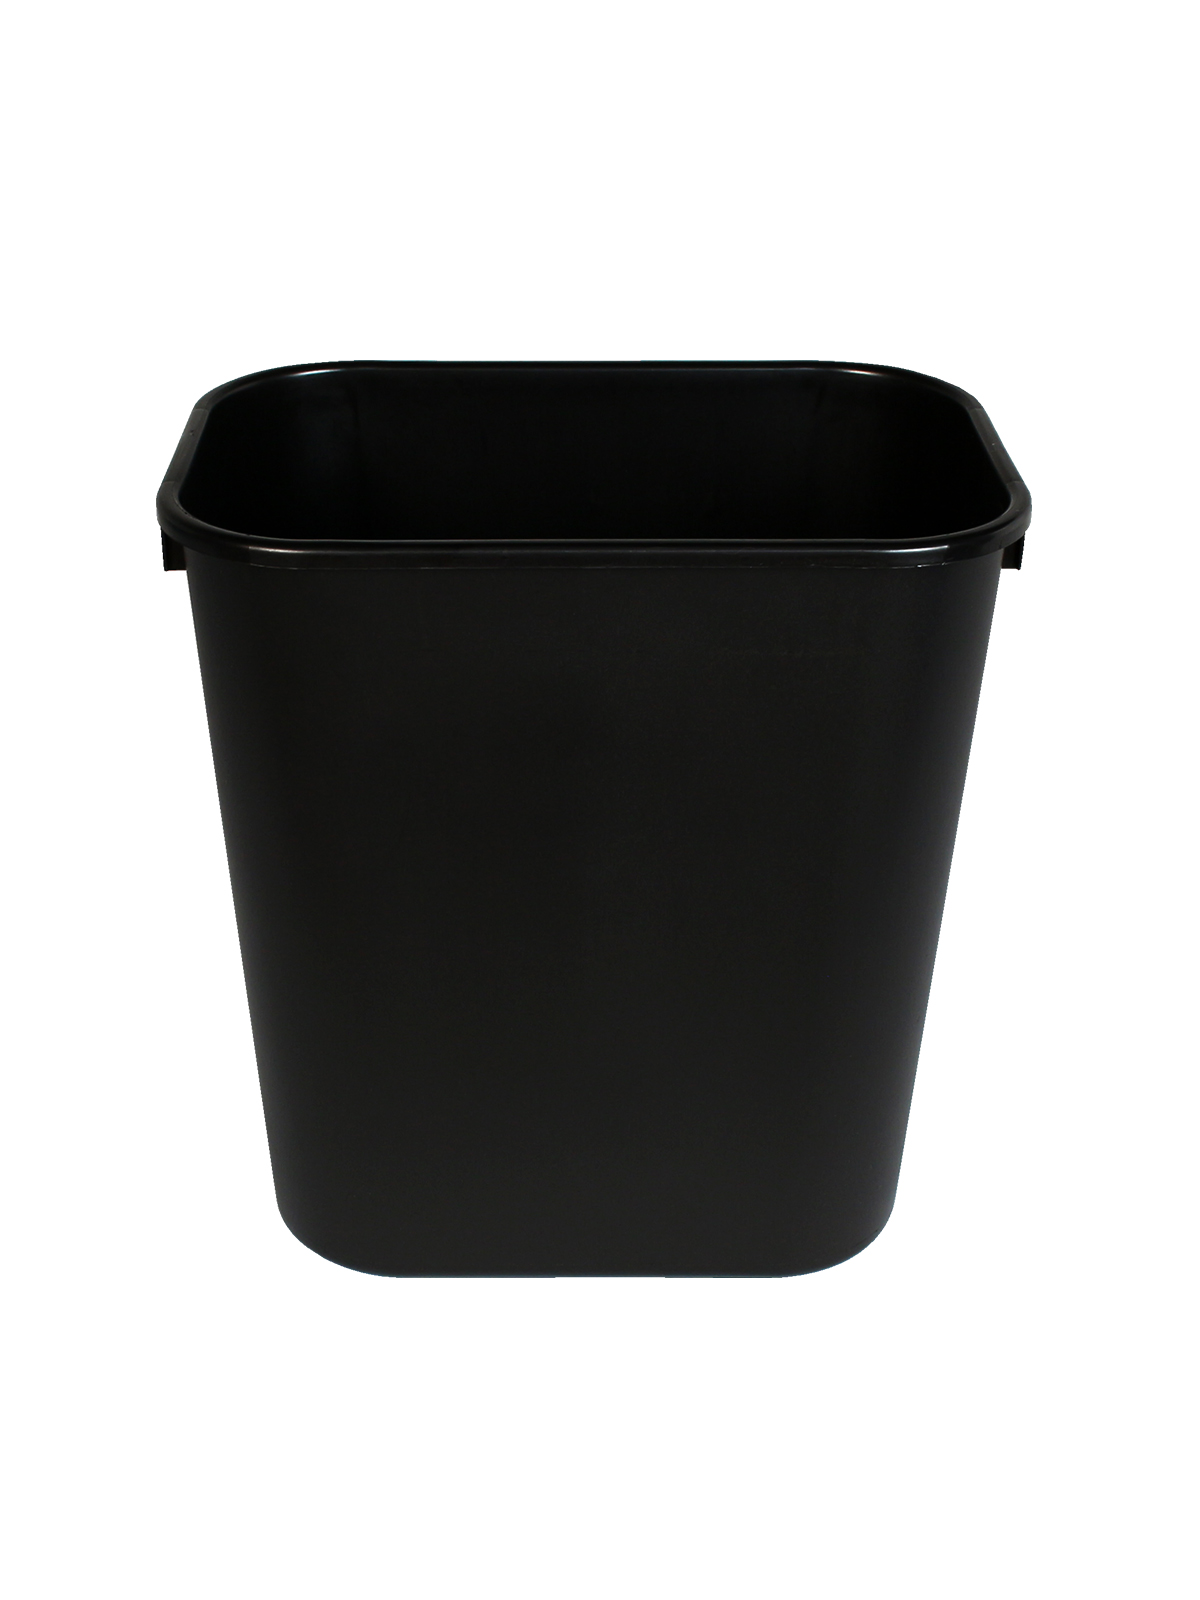 14 QUART- ALL RECYCLED CONTENT- BLANK BLACK title=